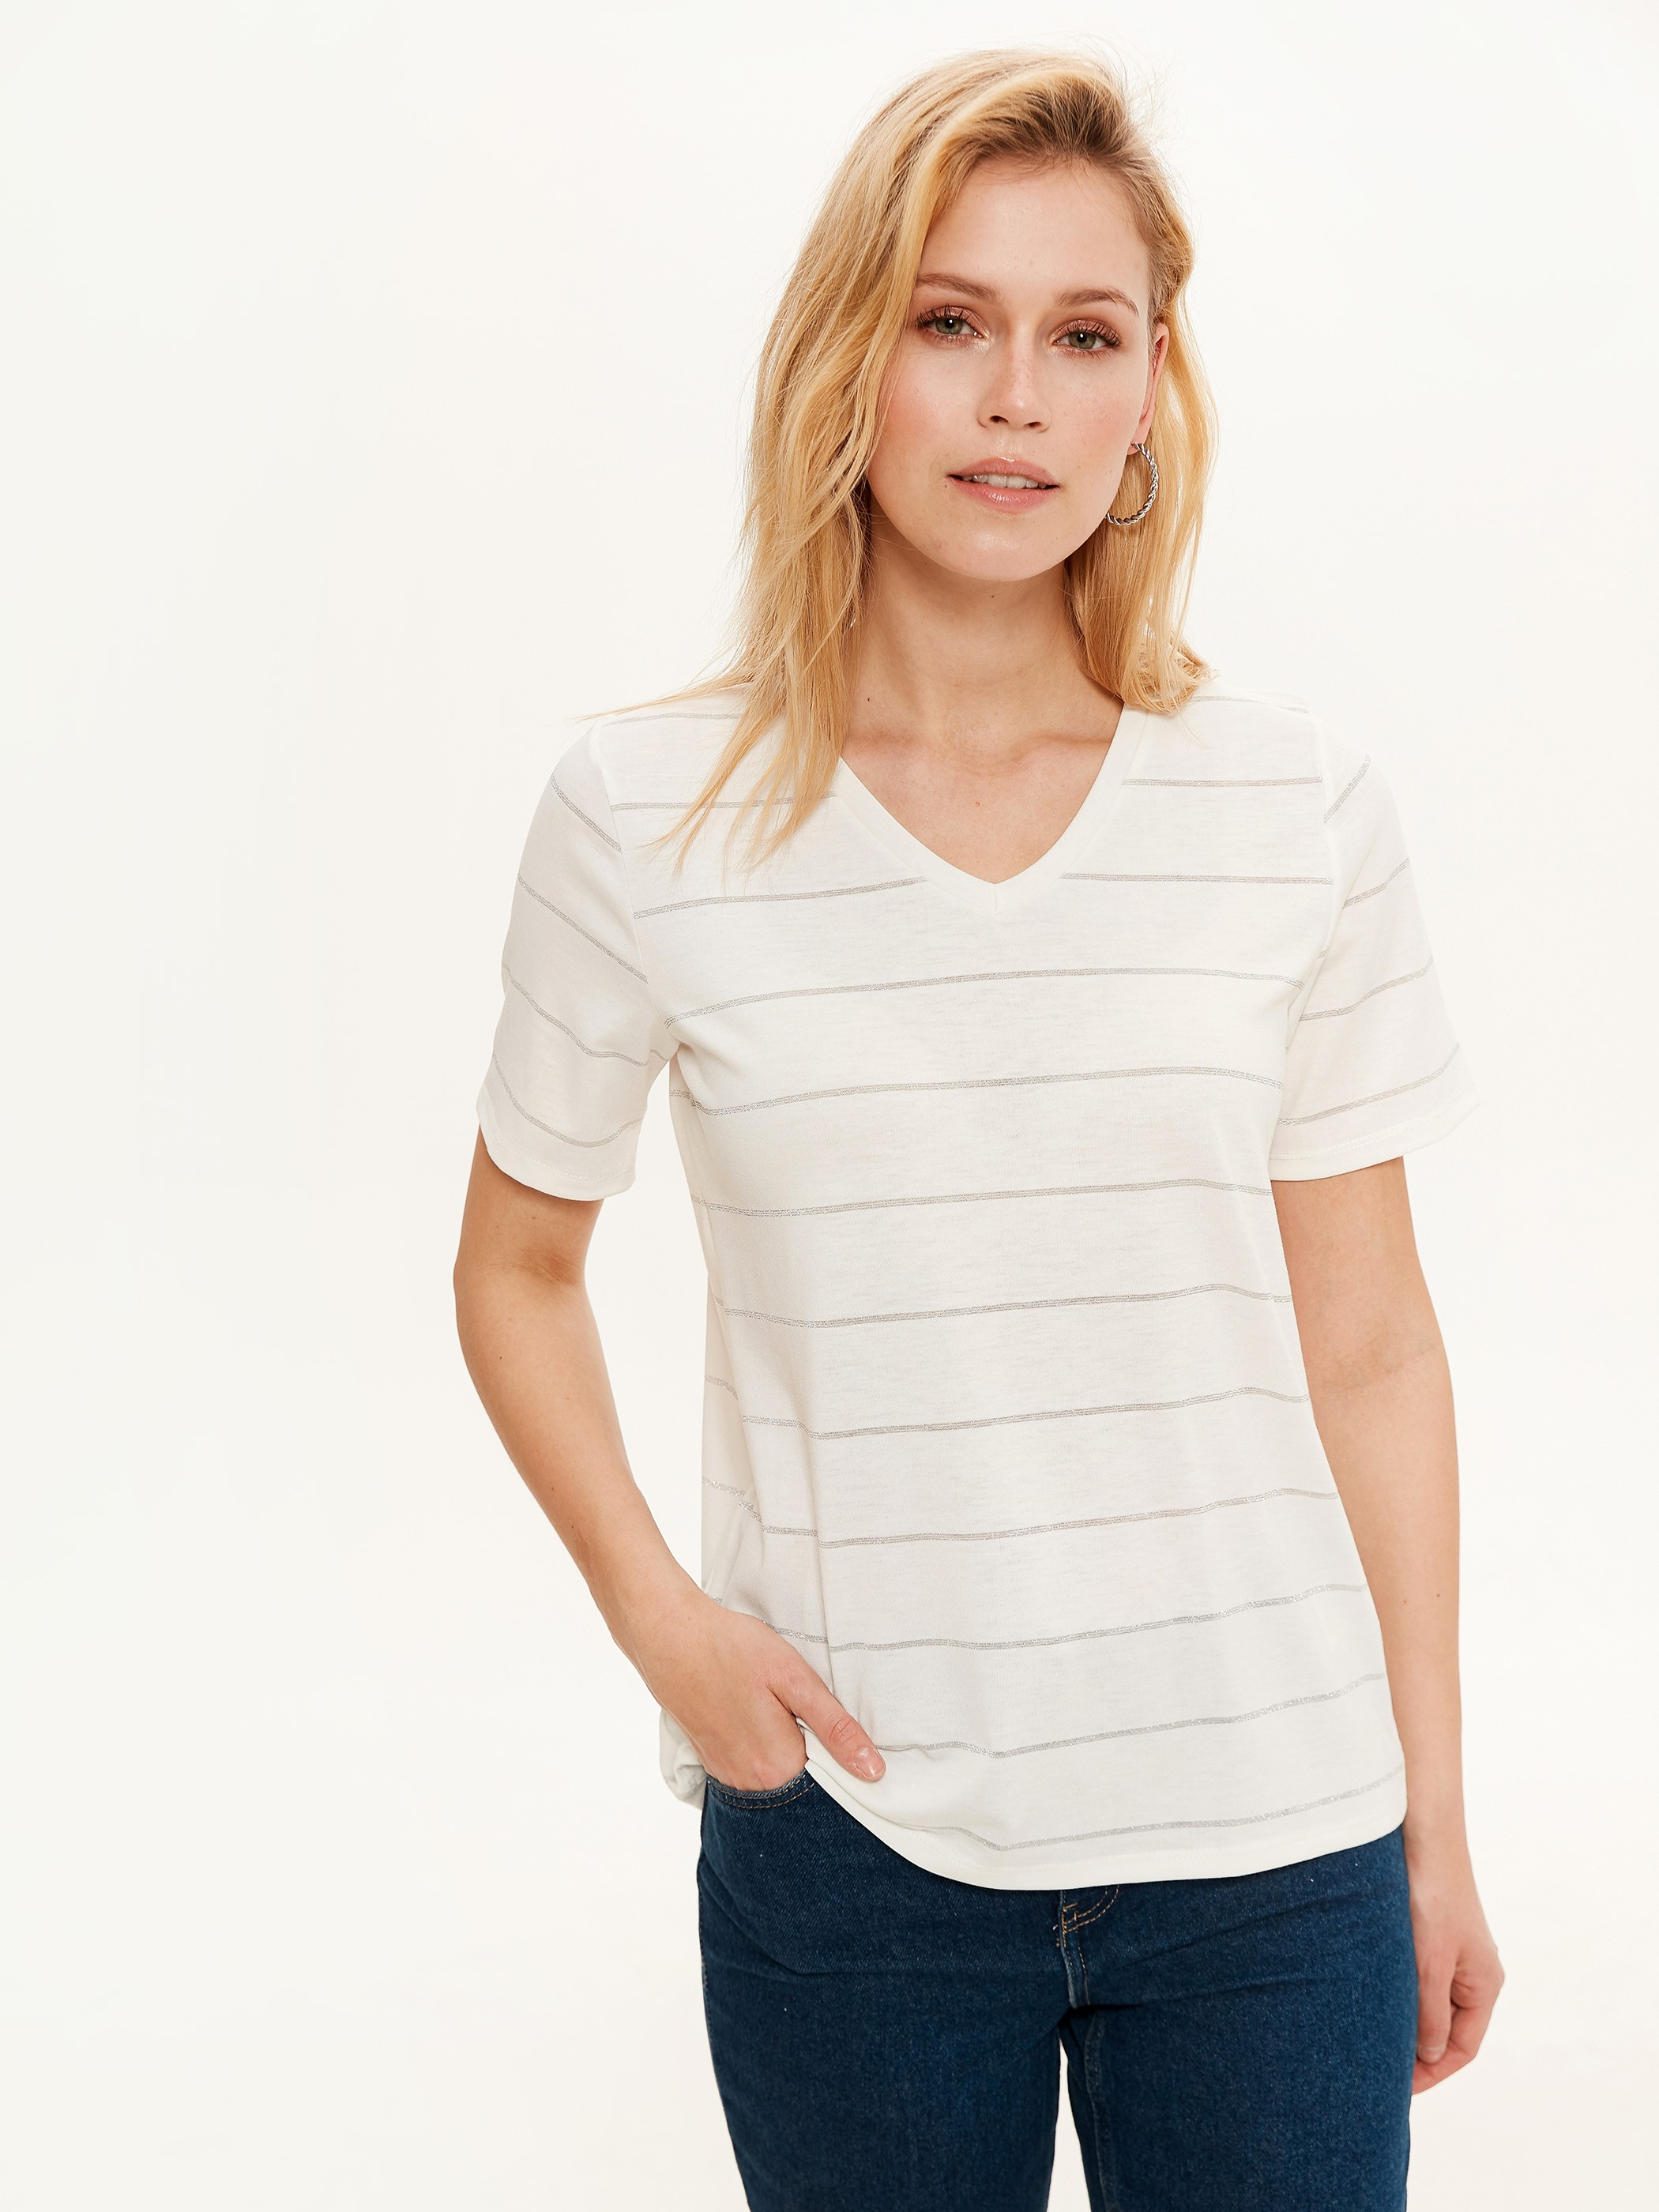 GREY - Striped Stretch T-Shirt - 0S4950Z8